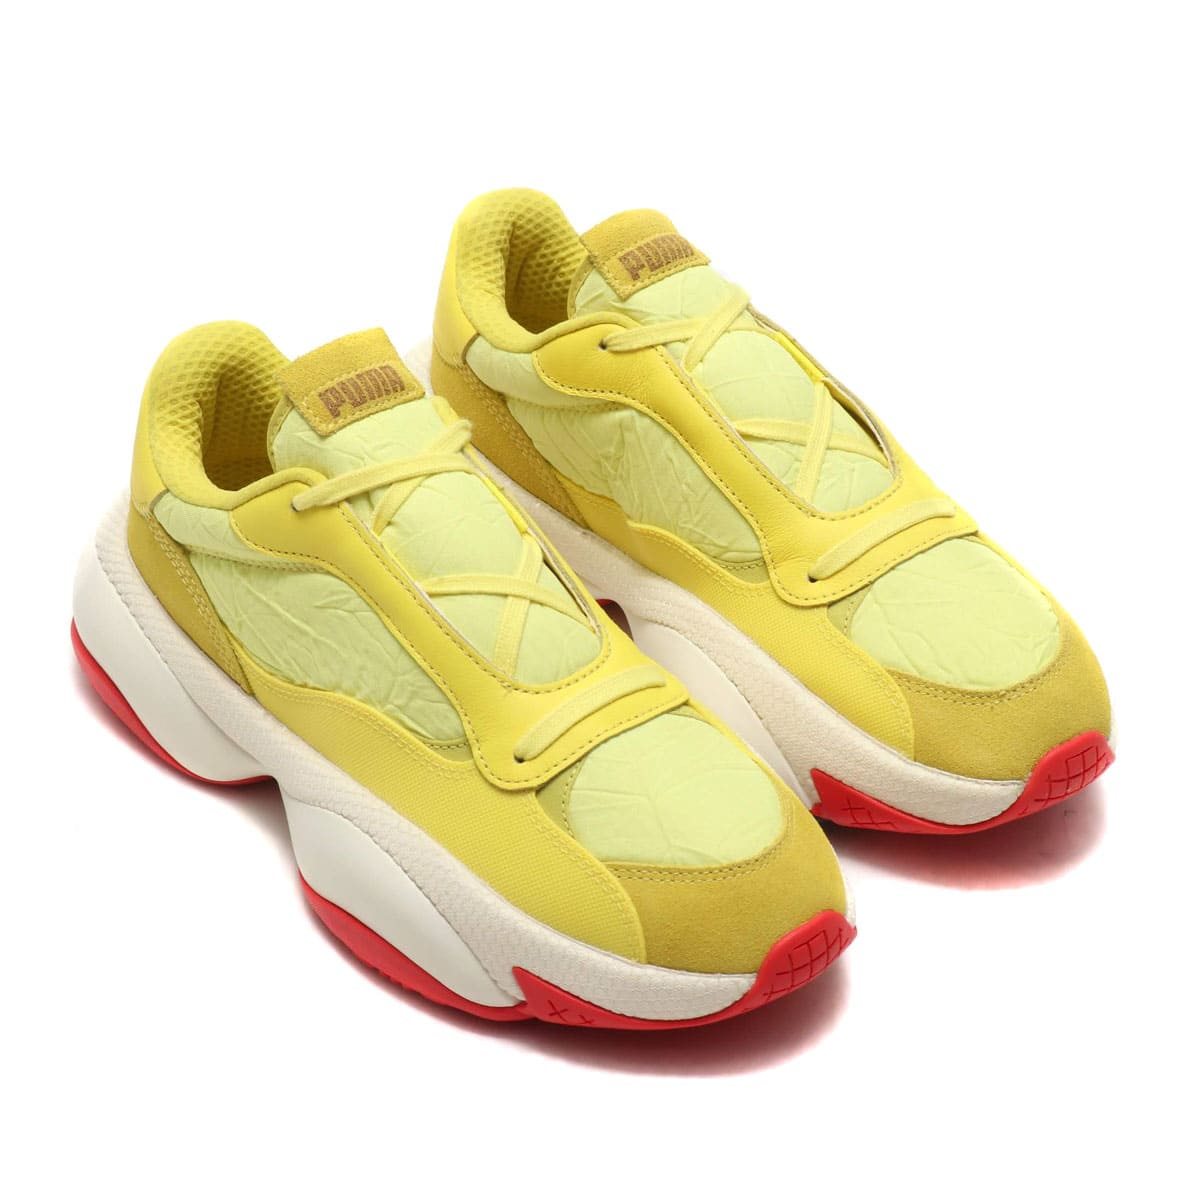 PUMA ALTERATION PN-1 CELERY-LIMELIGHT 19FA-S_photo_large